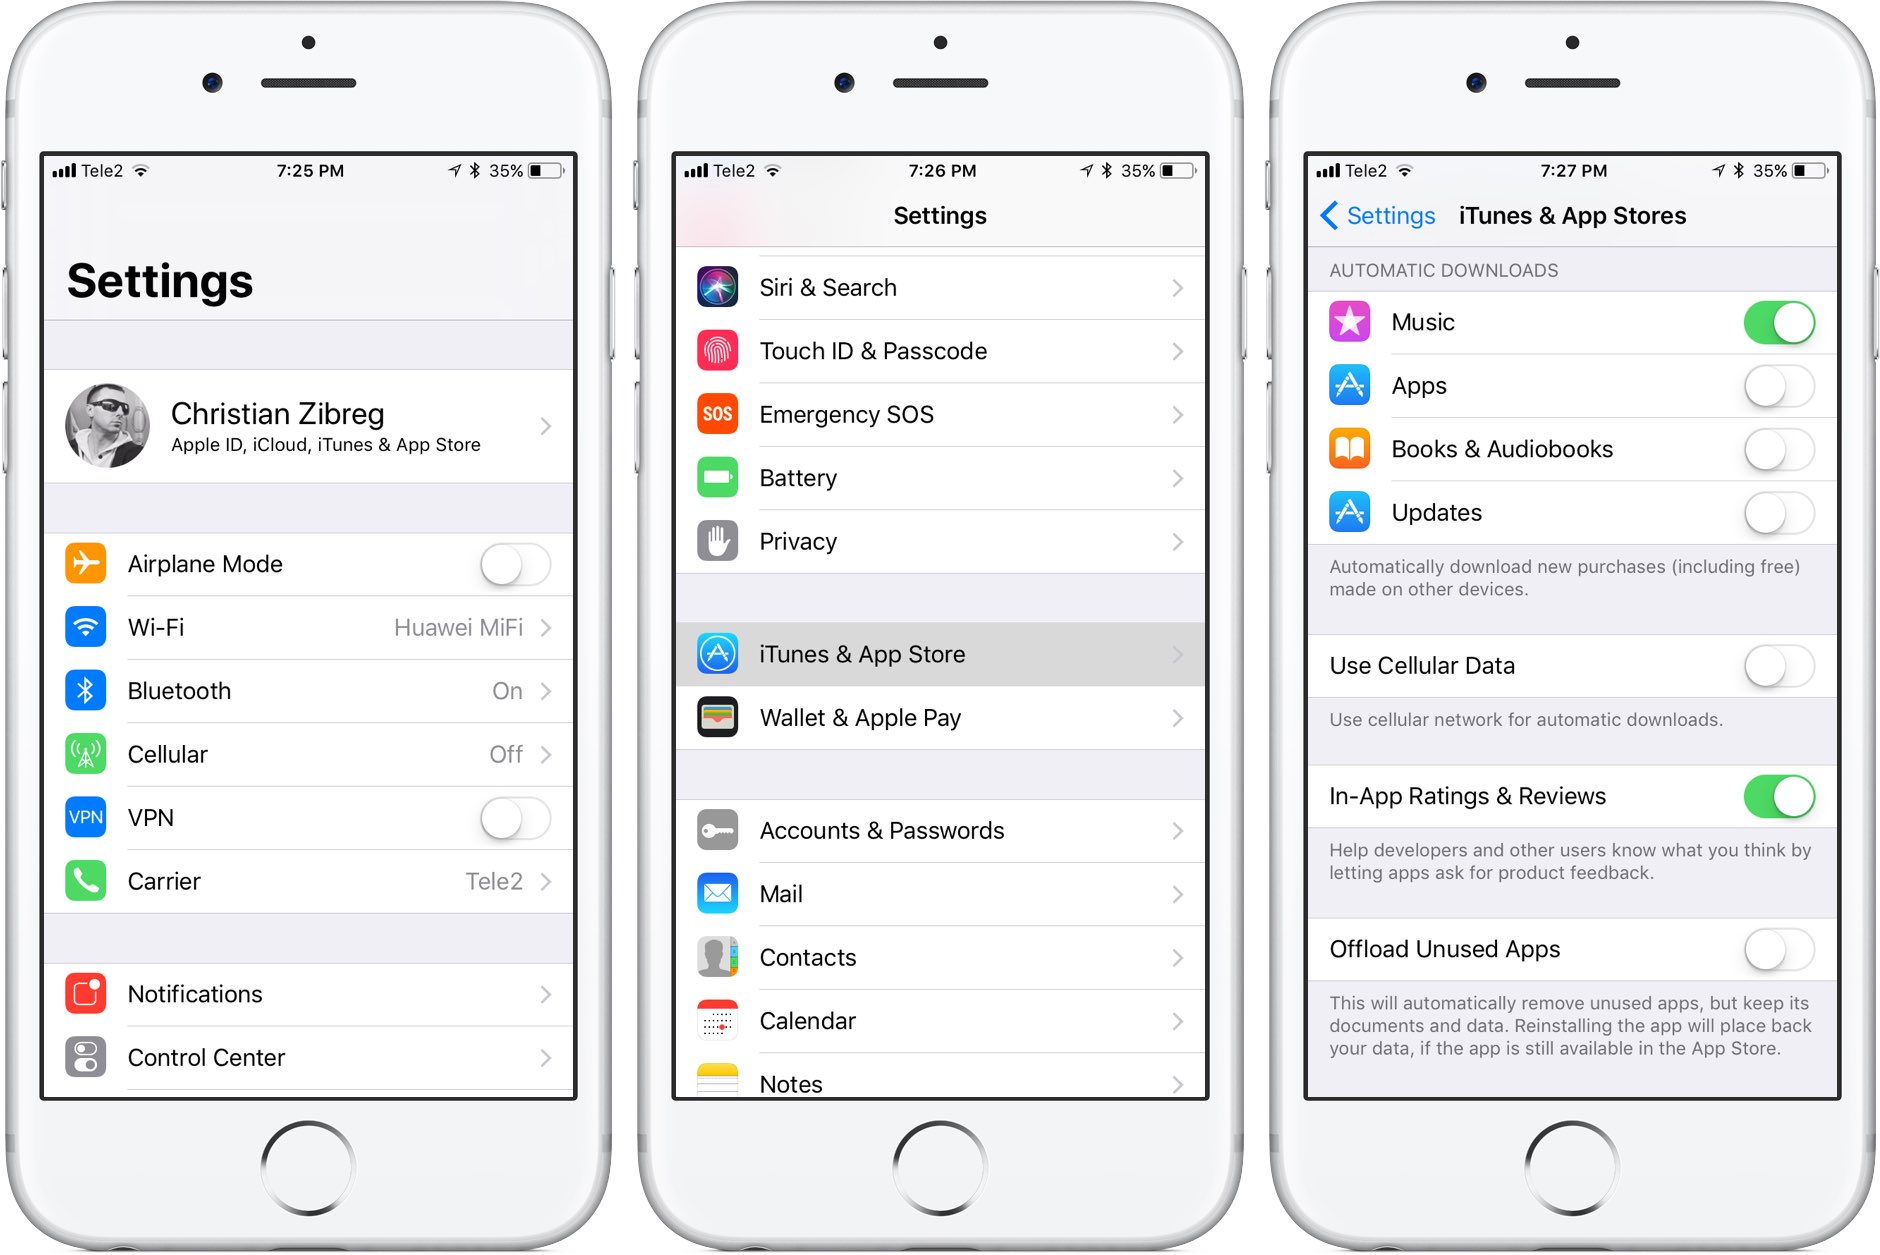 How to delete iphone apps from itunes